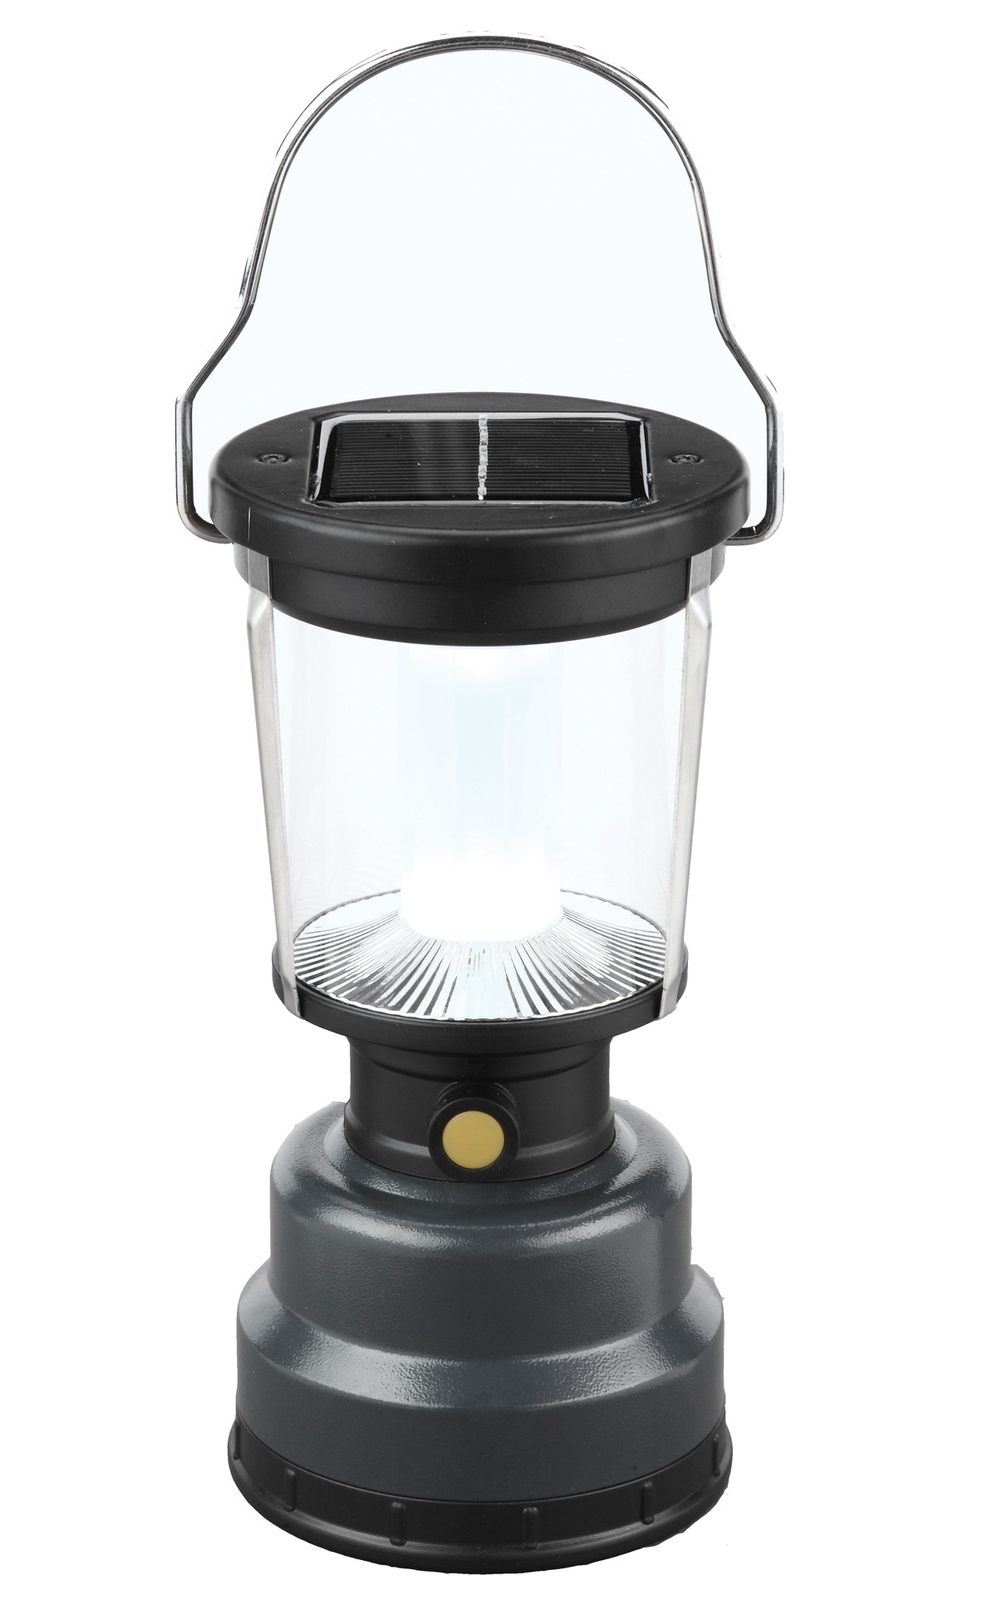 Widely Used Oztrail Escape Led Rechargeable Lantern Pertaining To Outdoor Rechargeable Lanterns (View 19 of 20)